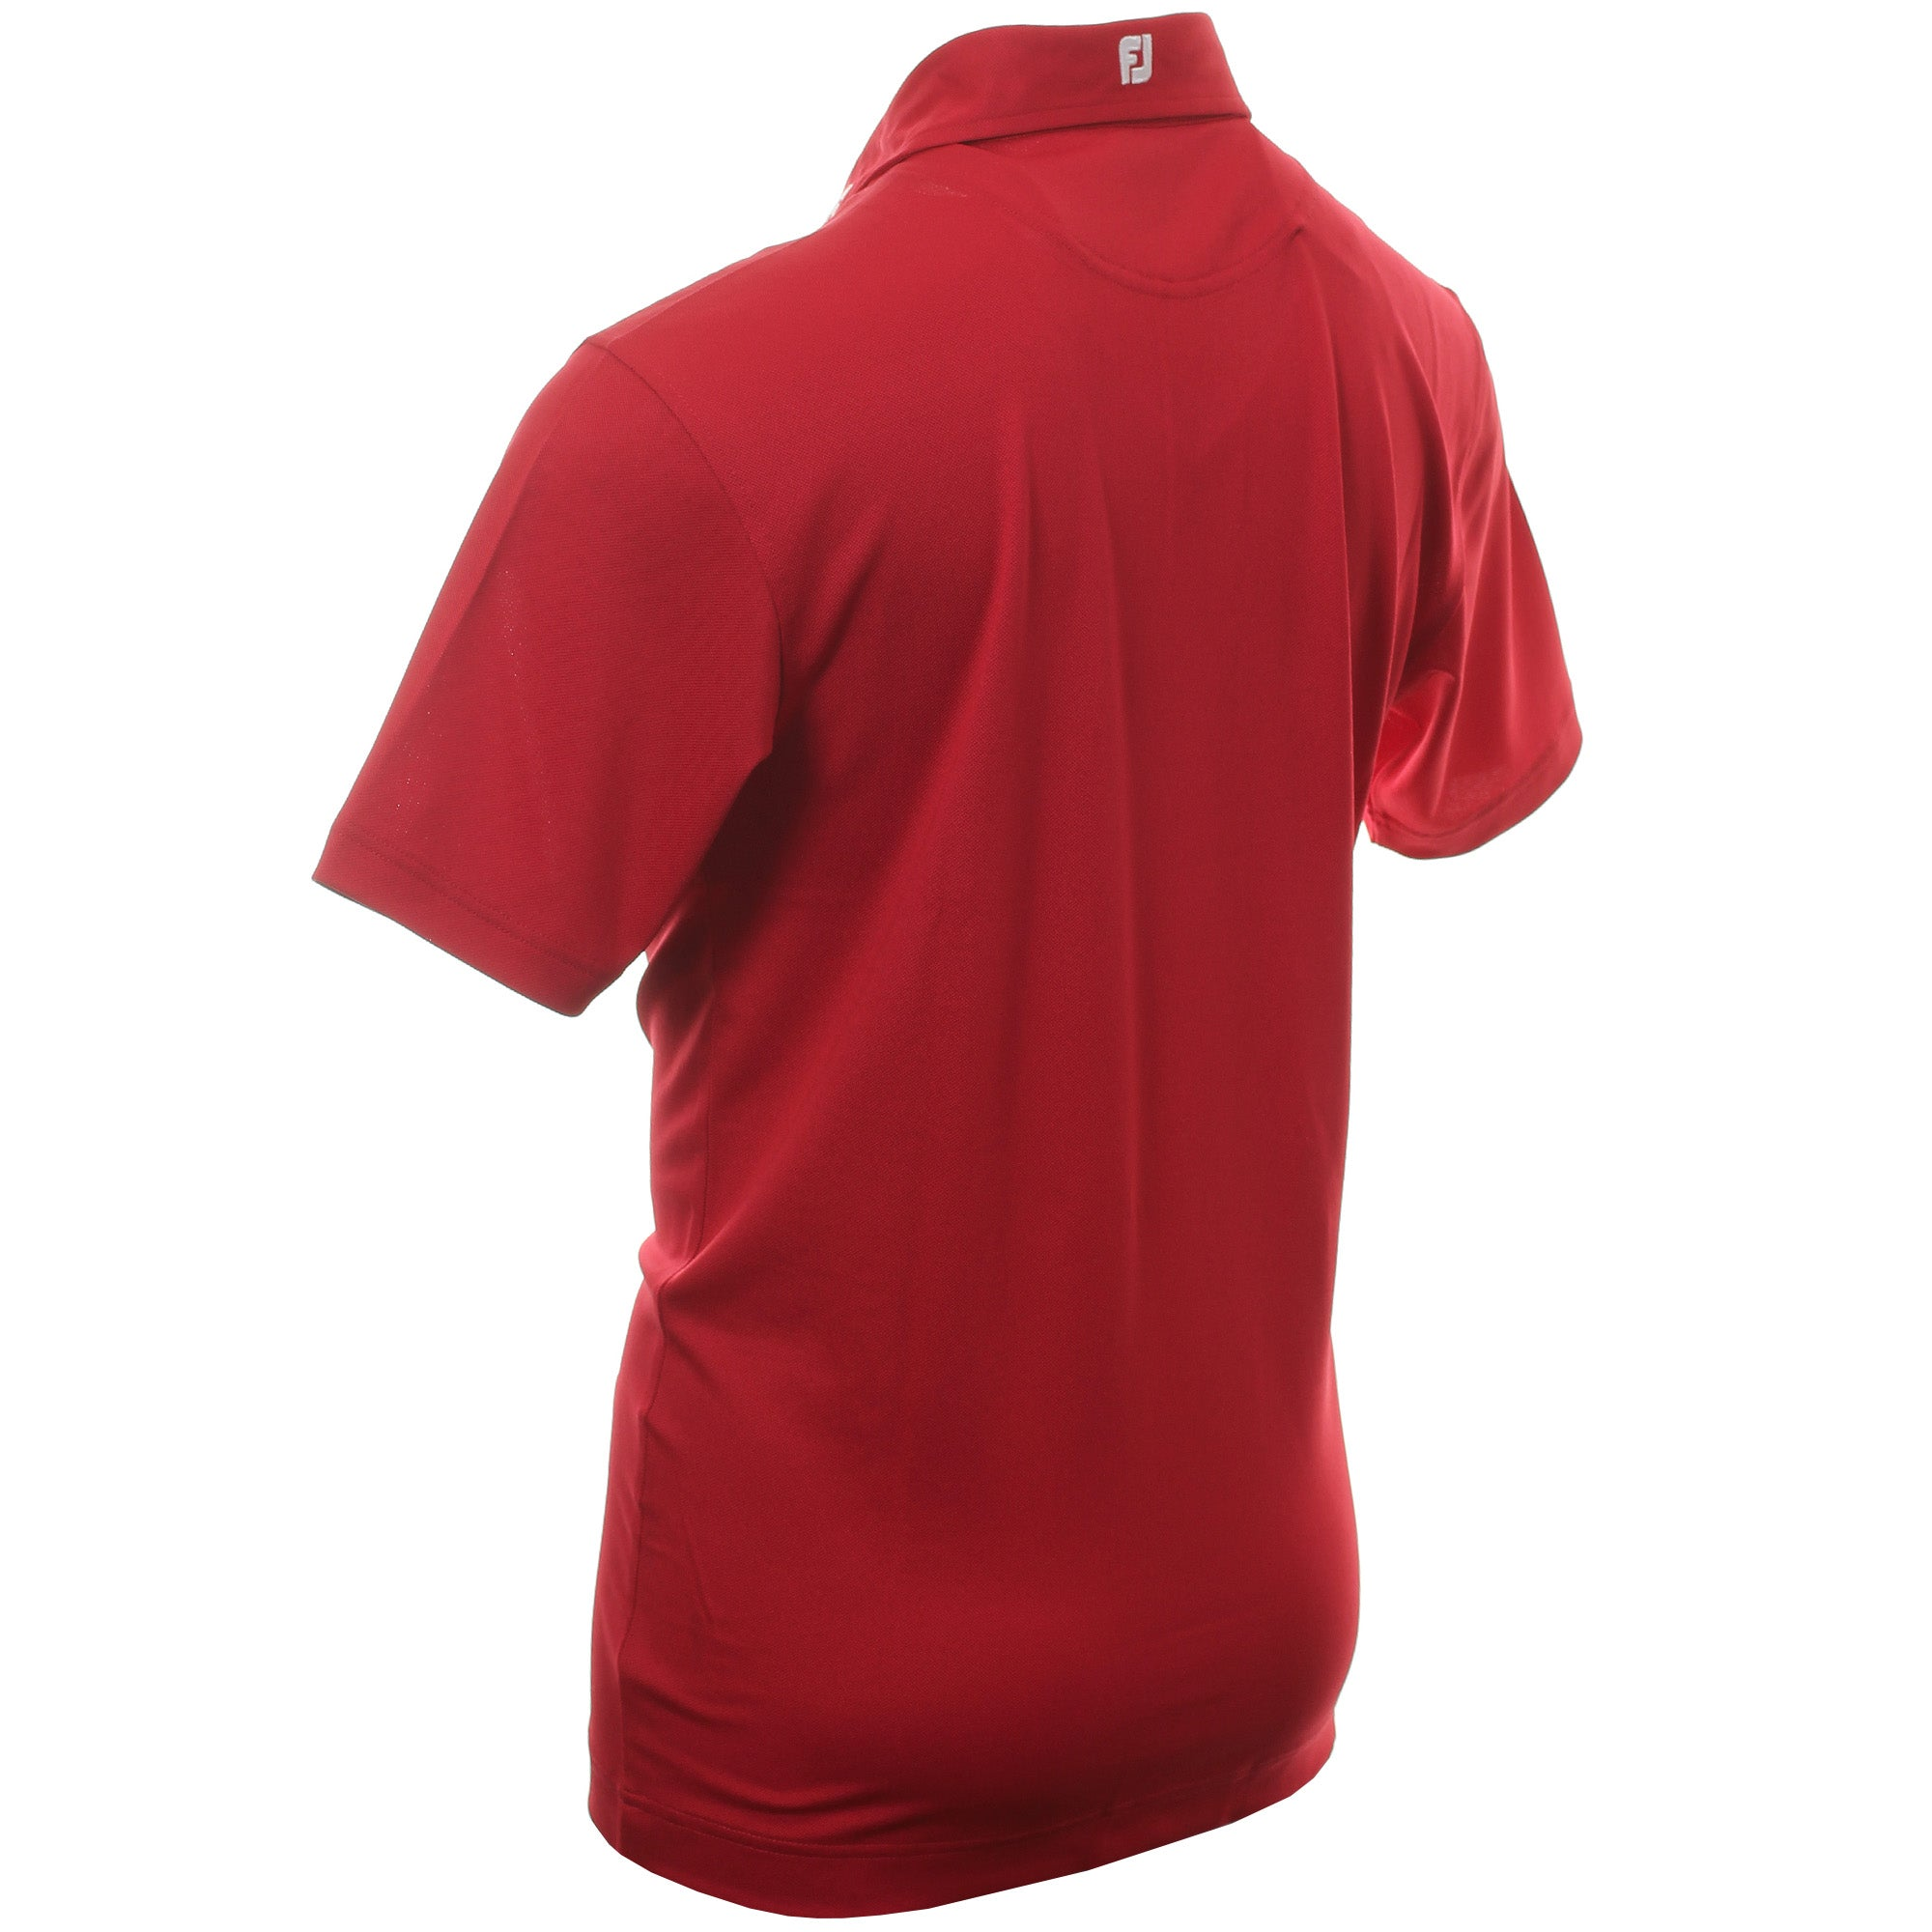 FootJoy Stretch Pique Solid Golf Shirt